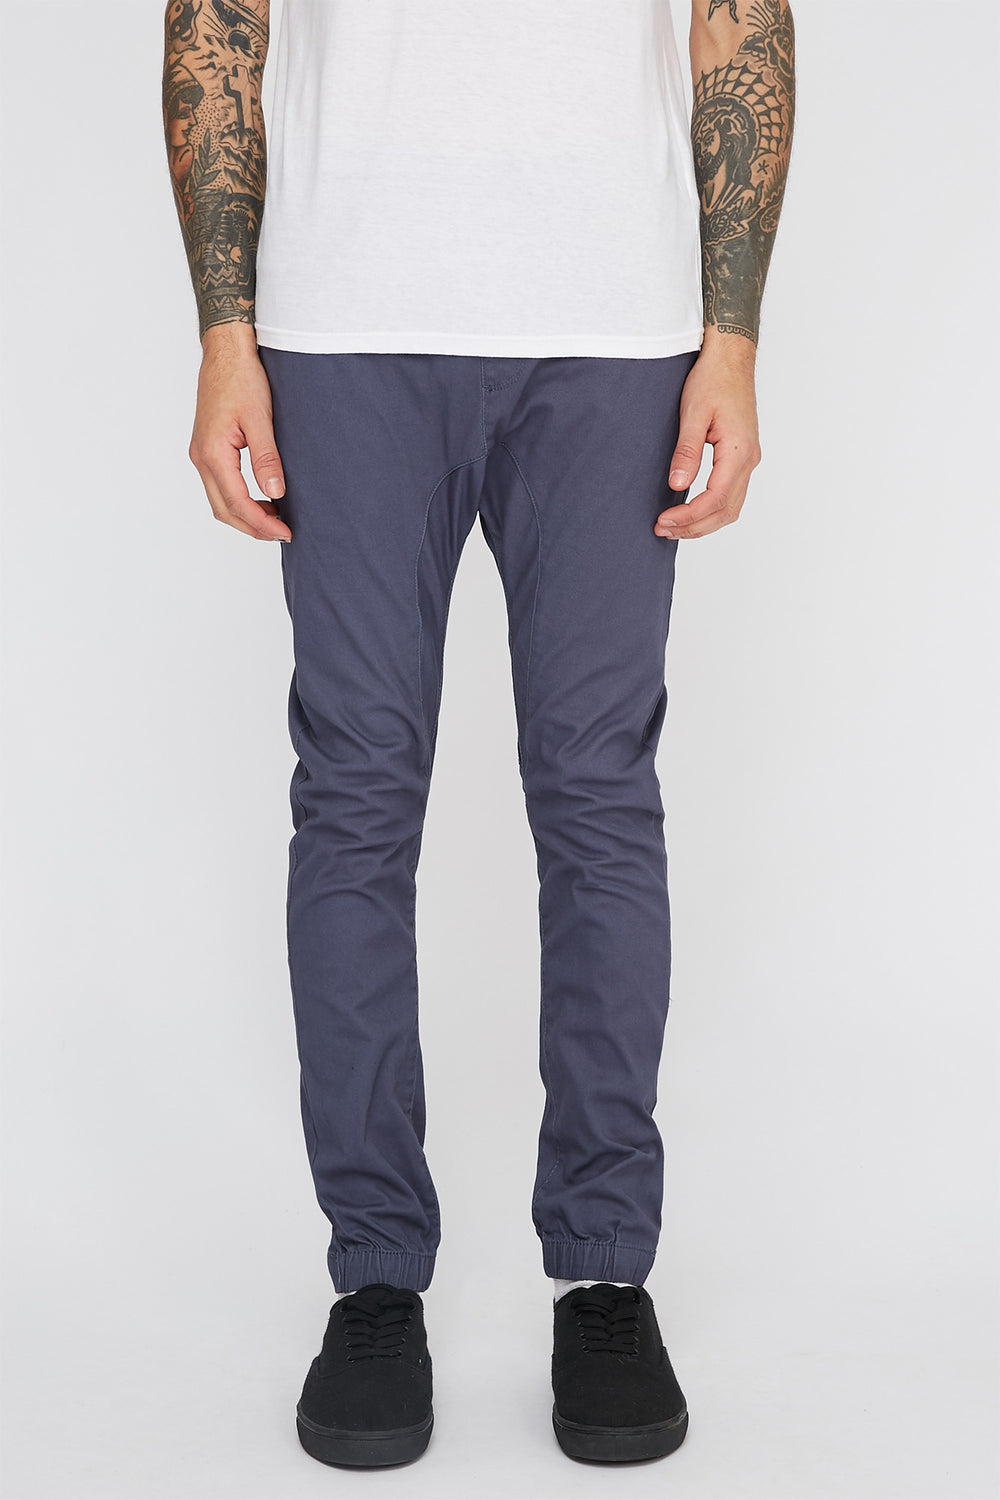 Zoo York Mens 5-Pocket Jogger Silver